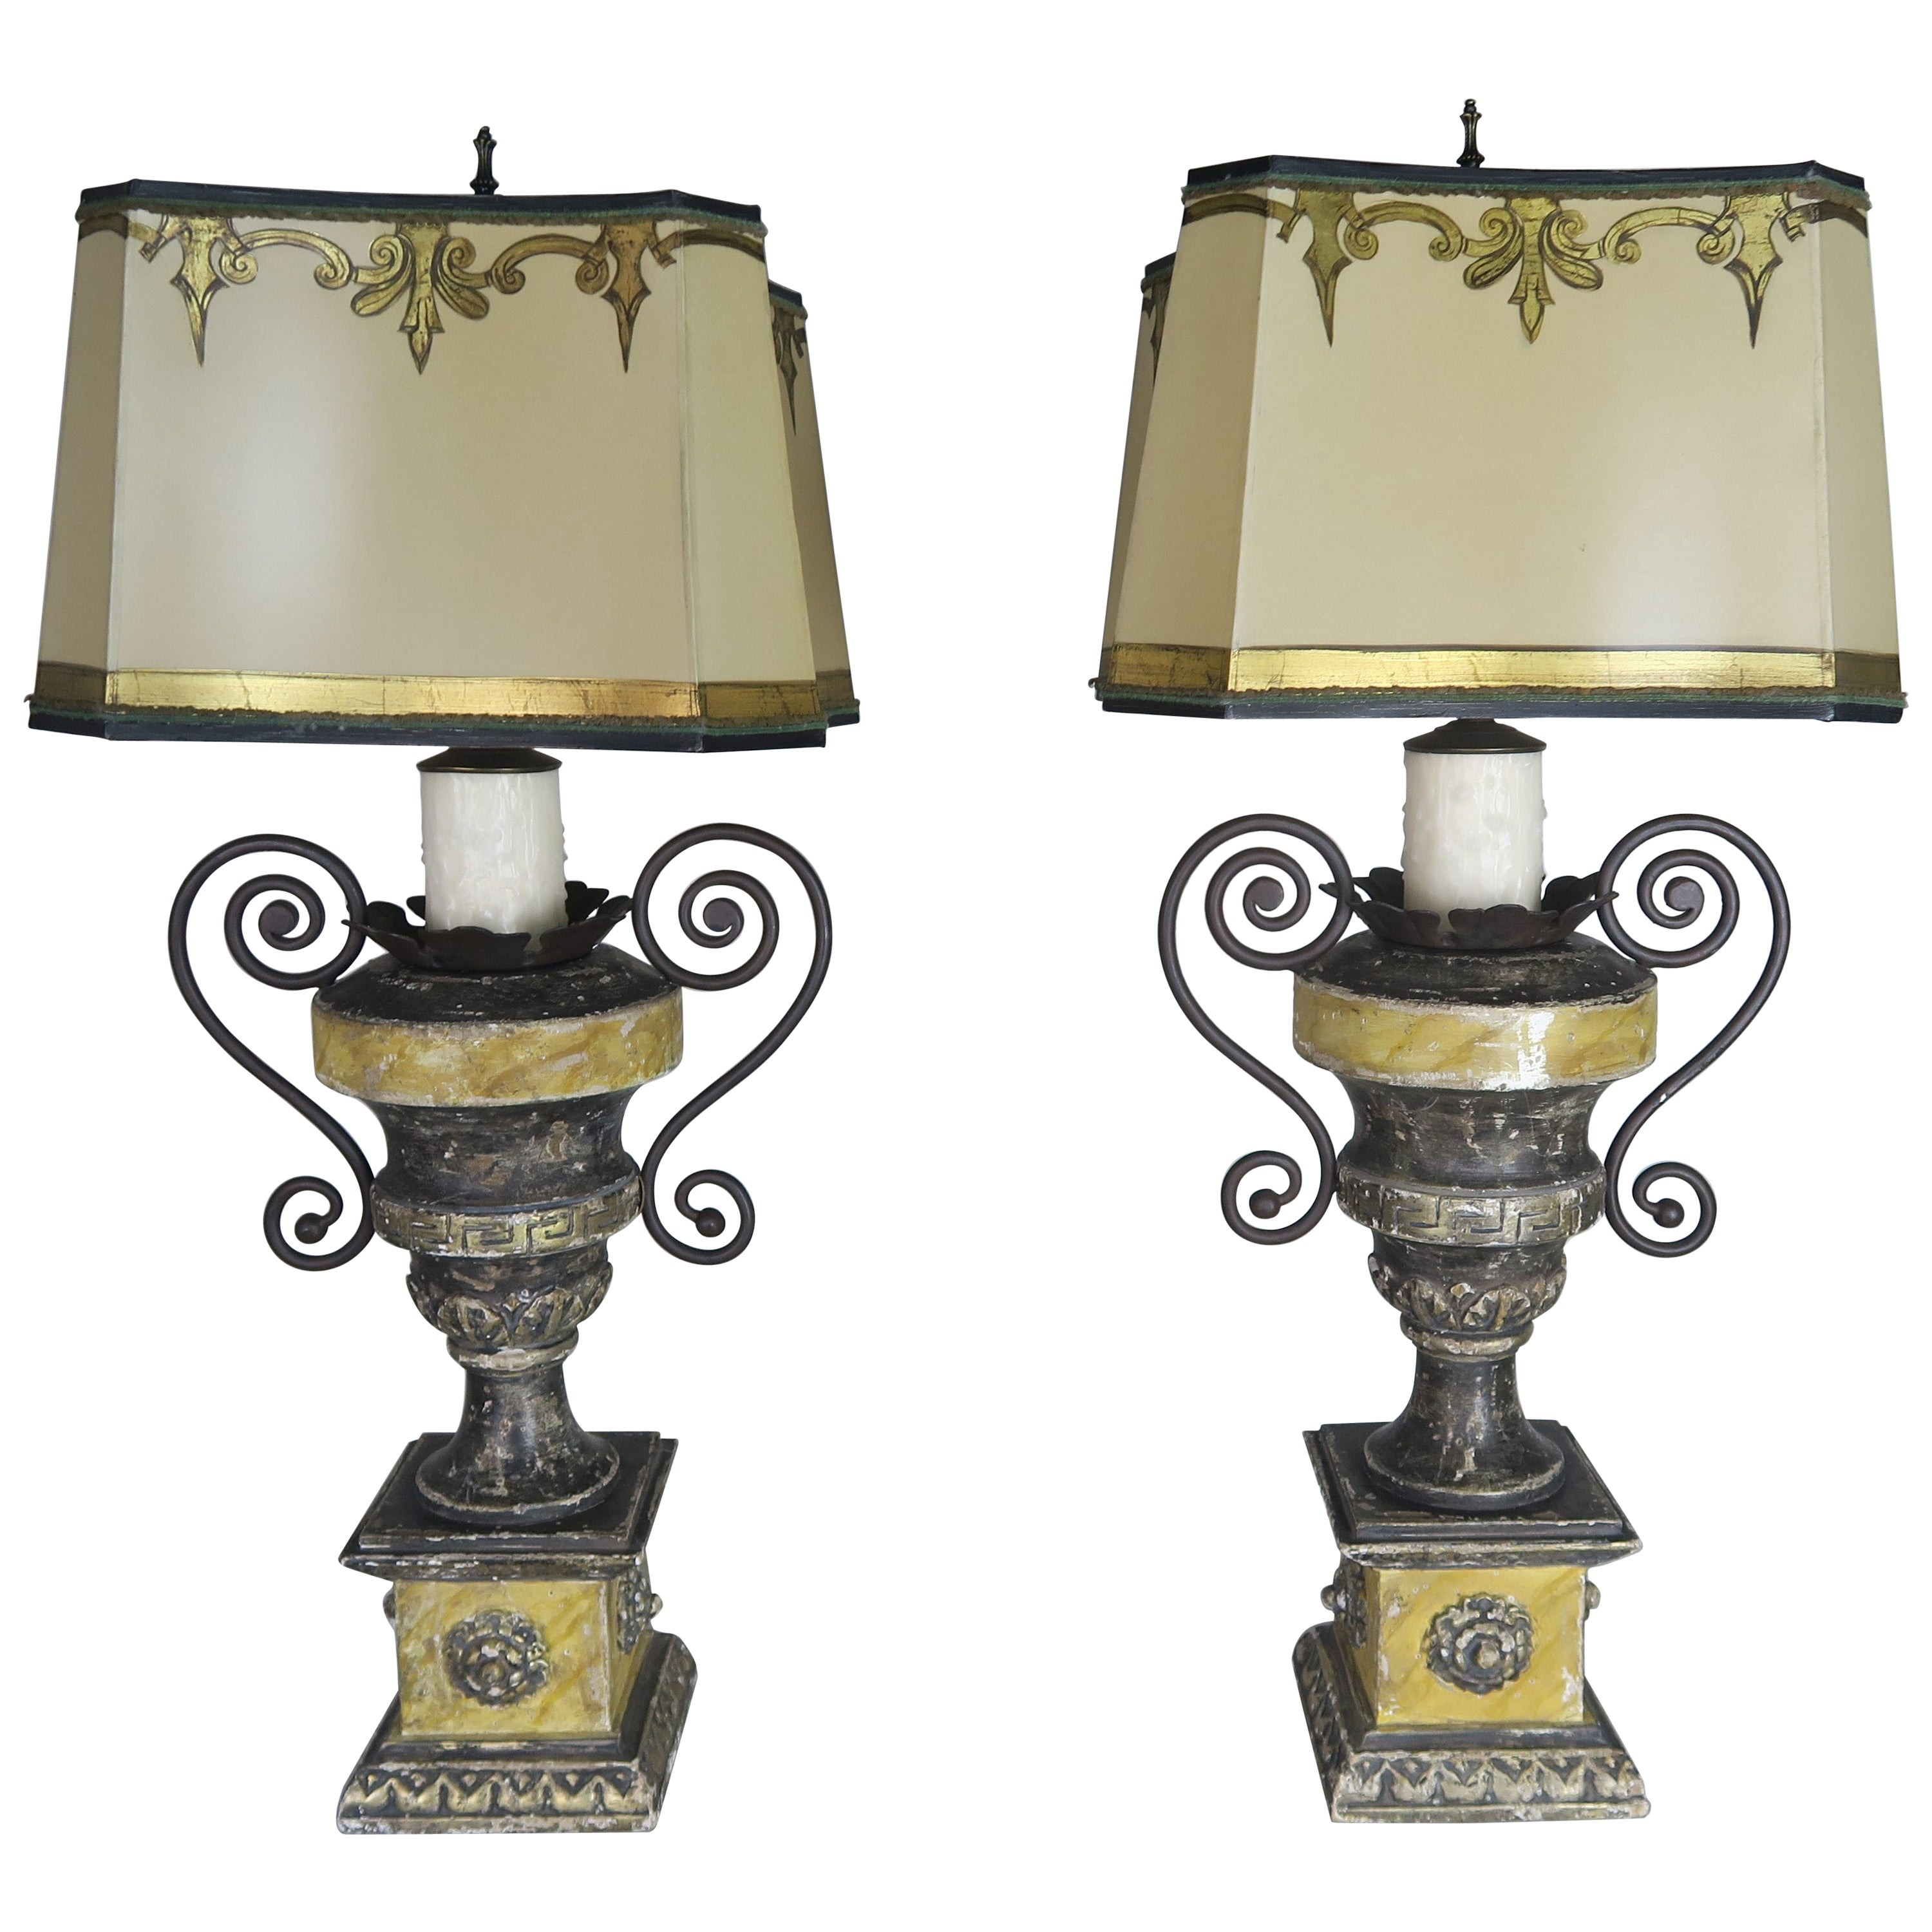 Neoclassical Style Carved Urn Lamps with Parchment Shades, a Pair